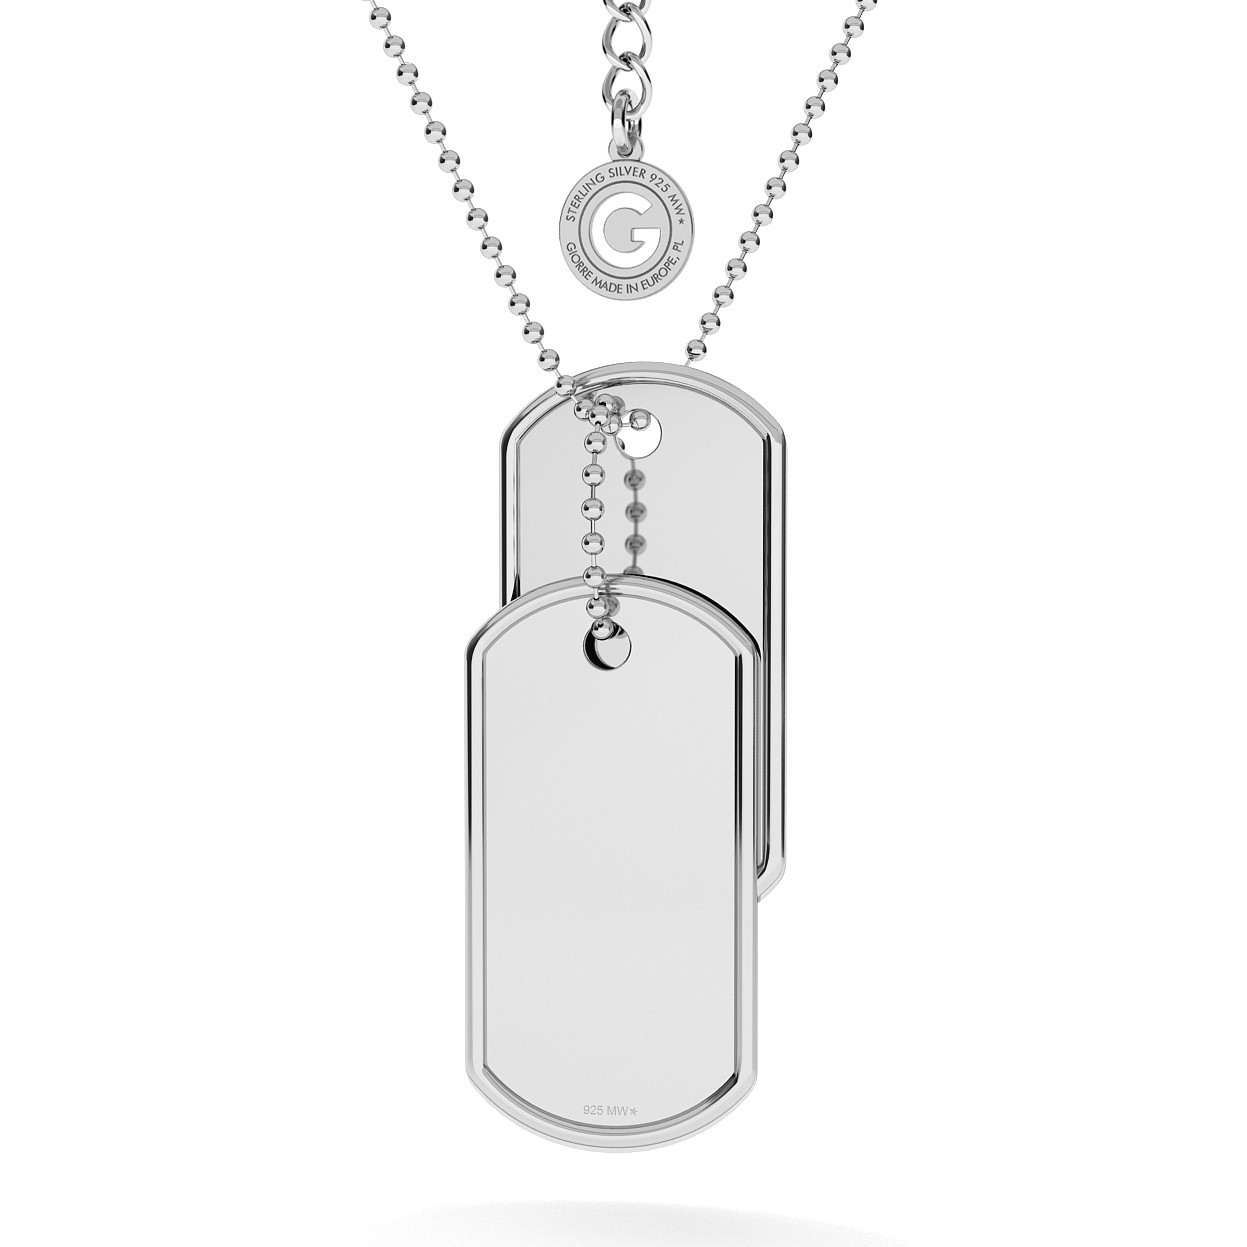 DOG TAG WITH ENGRAVE AND CHAIN SILVER 925, RHODIUM OR GOLD PLATED